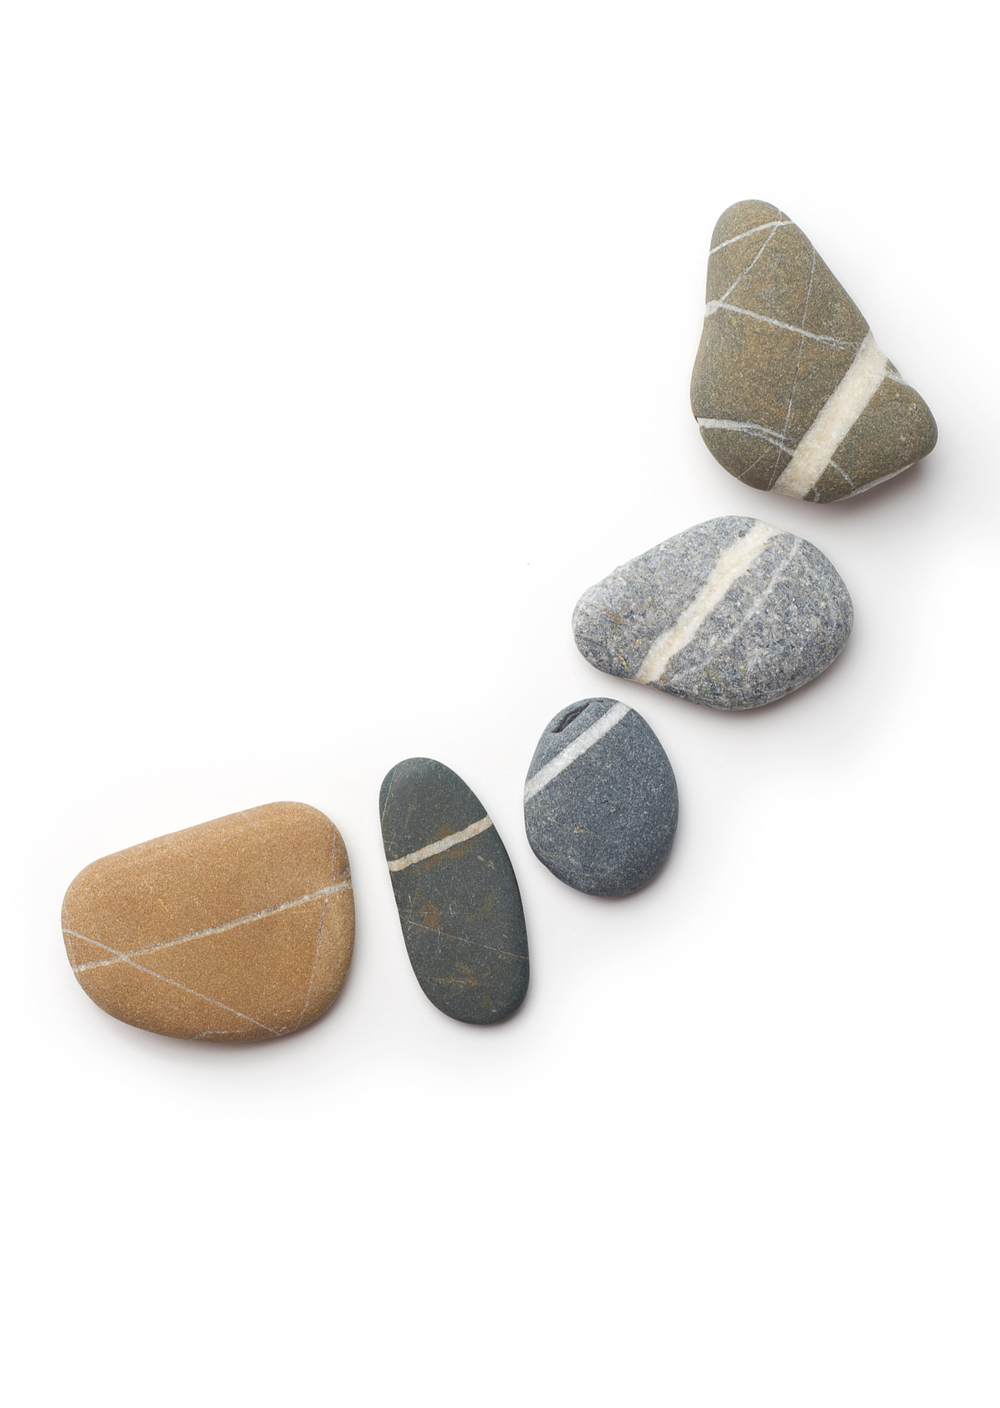 Stones Curved Line up 4x6.jpg